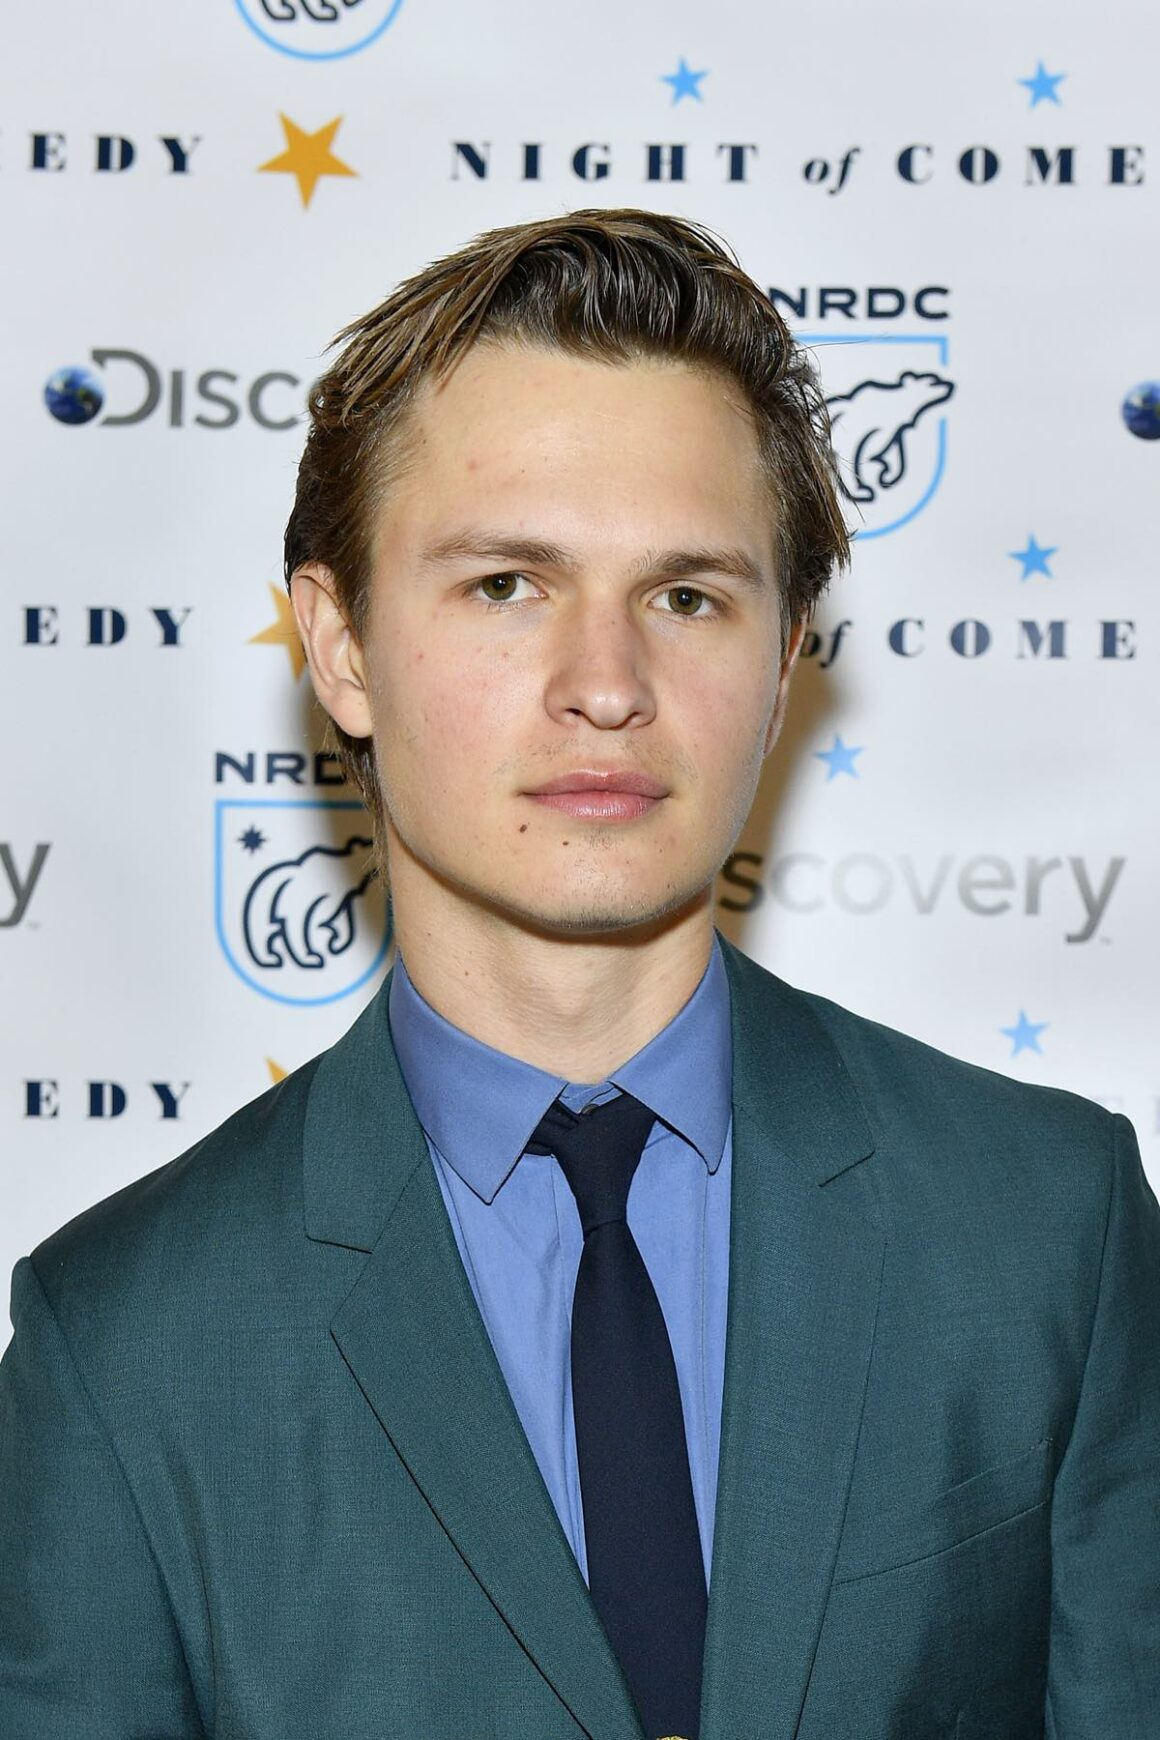 """Ansel Elgort attends The Natural Resources Defense Council Presents """"Night Of Comedy"""" Benefit, In Partnership With Discovery, Inc."""